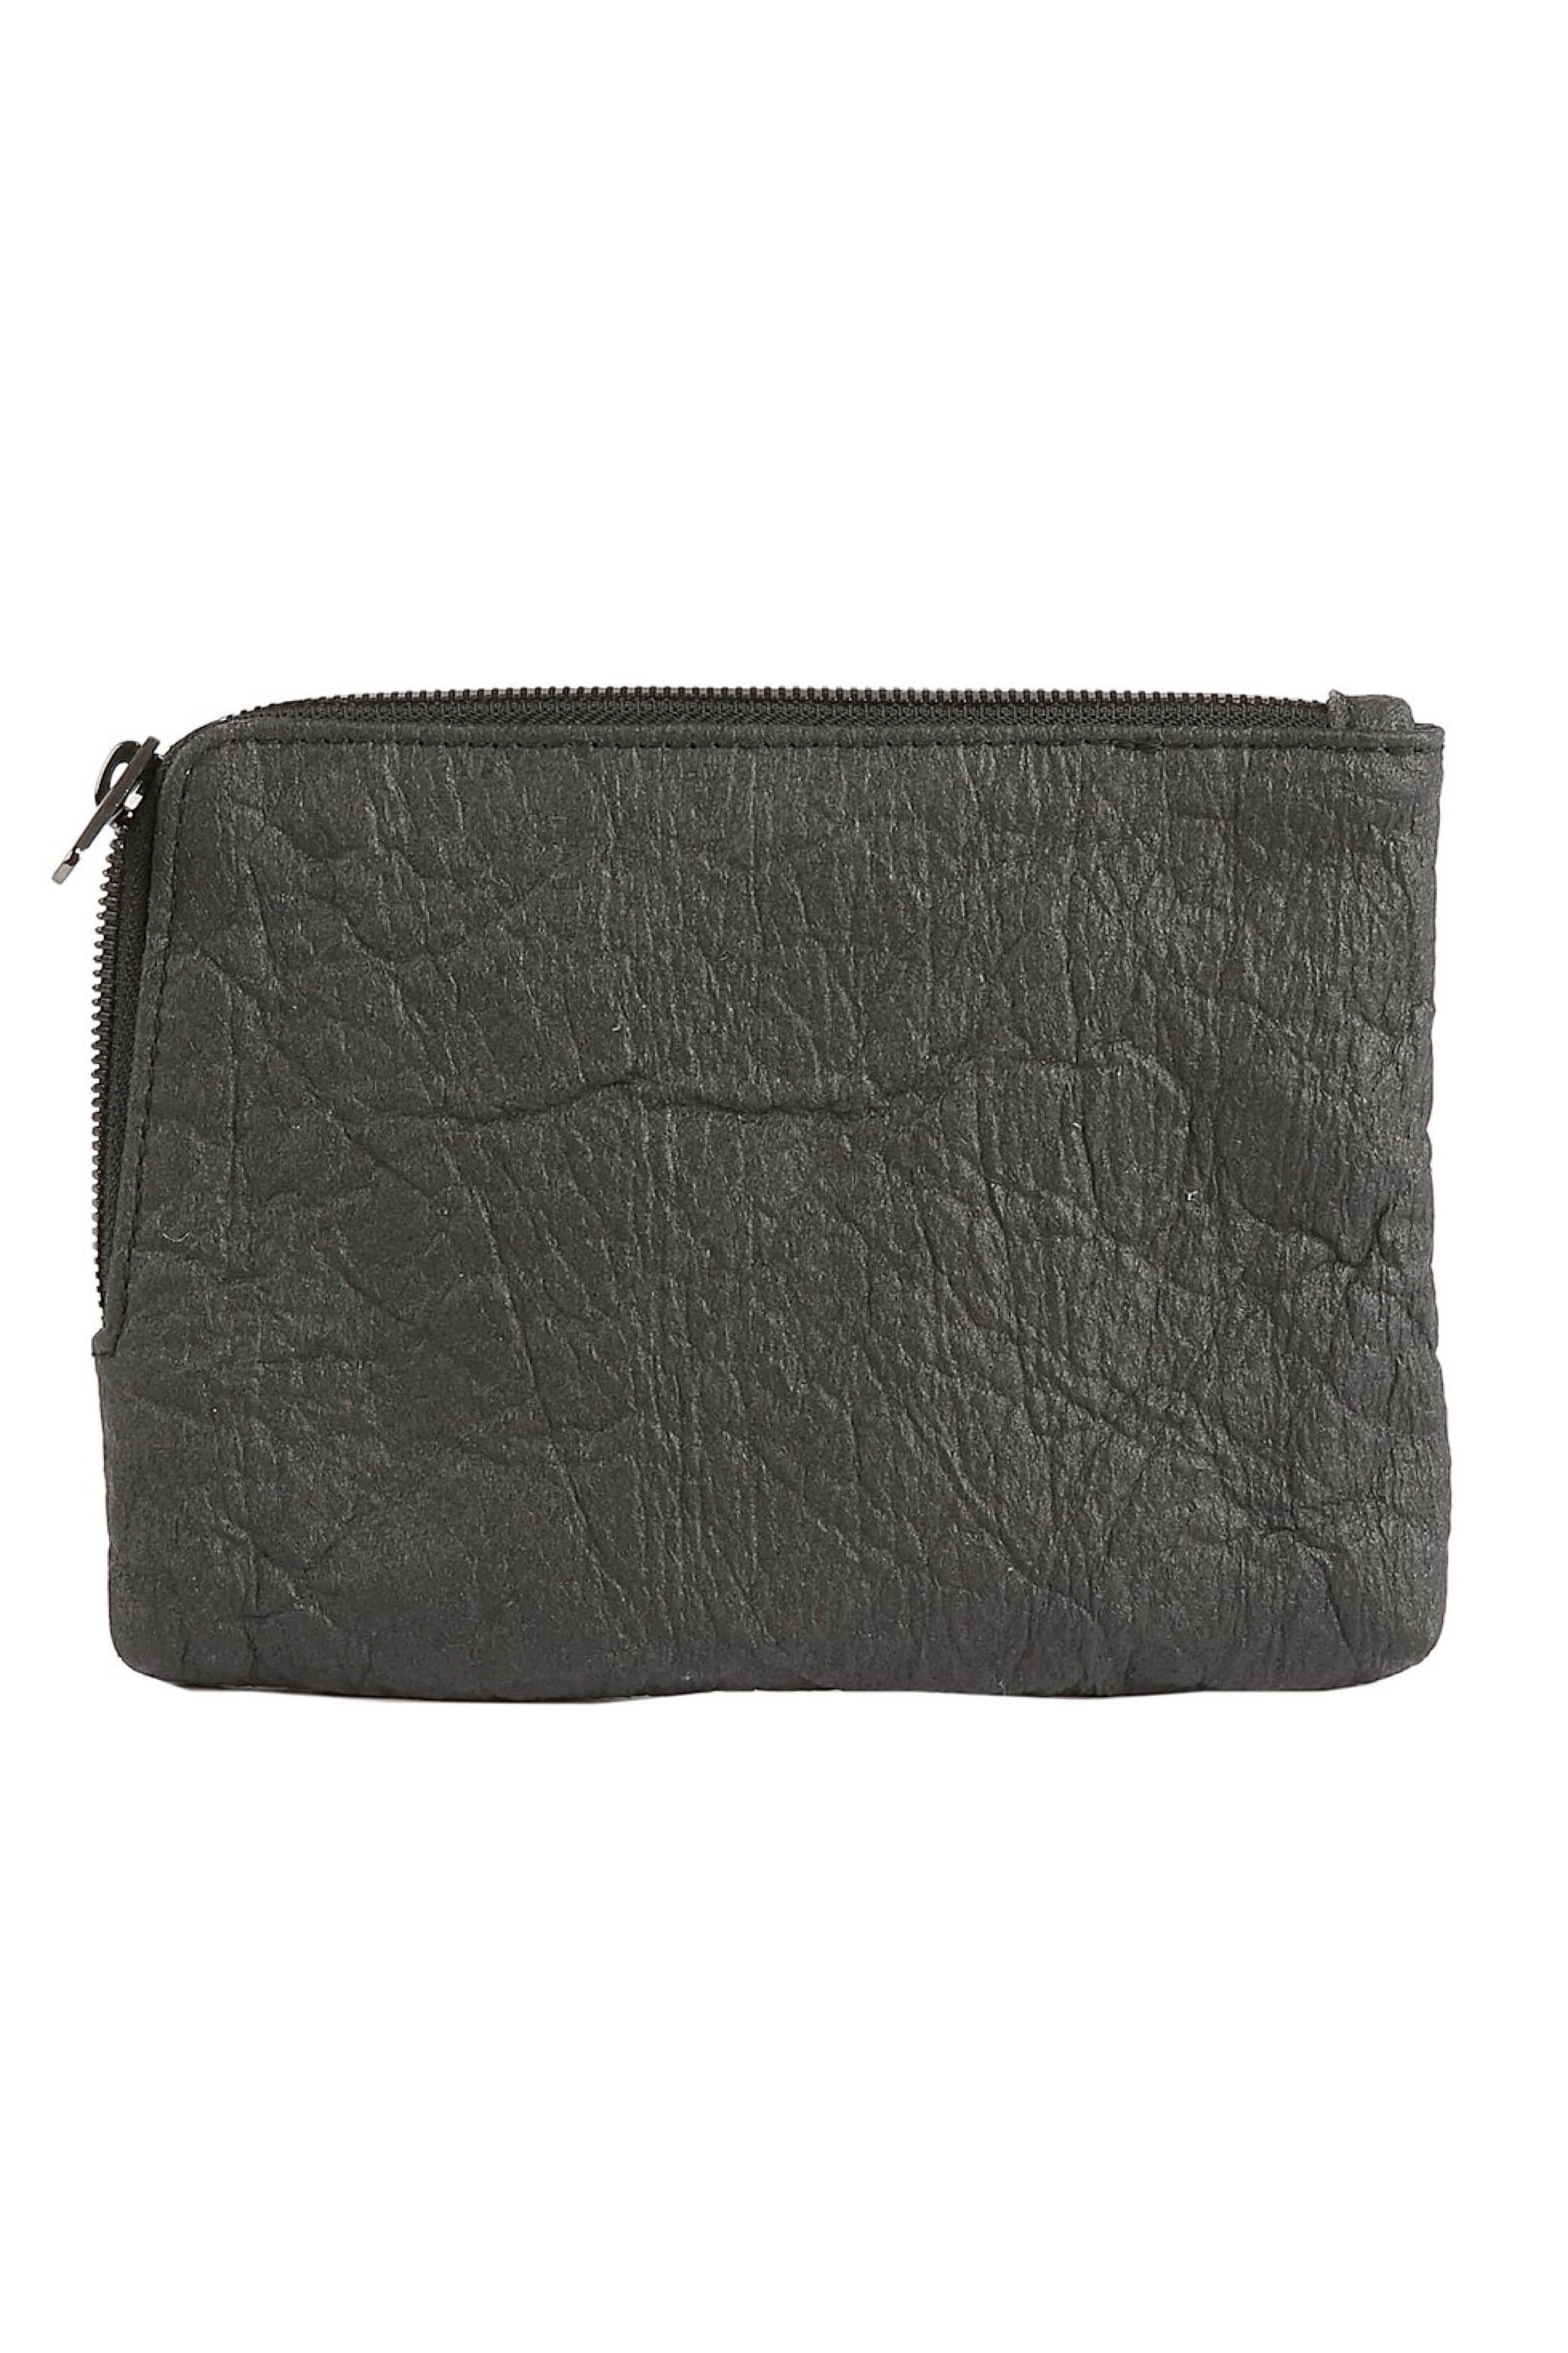 Pinatex Pouch